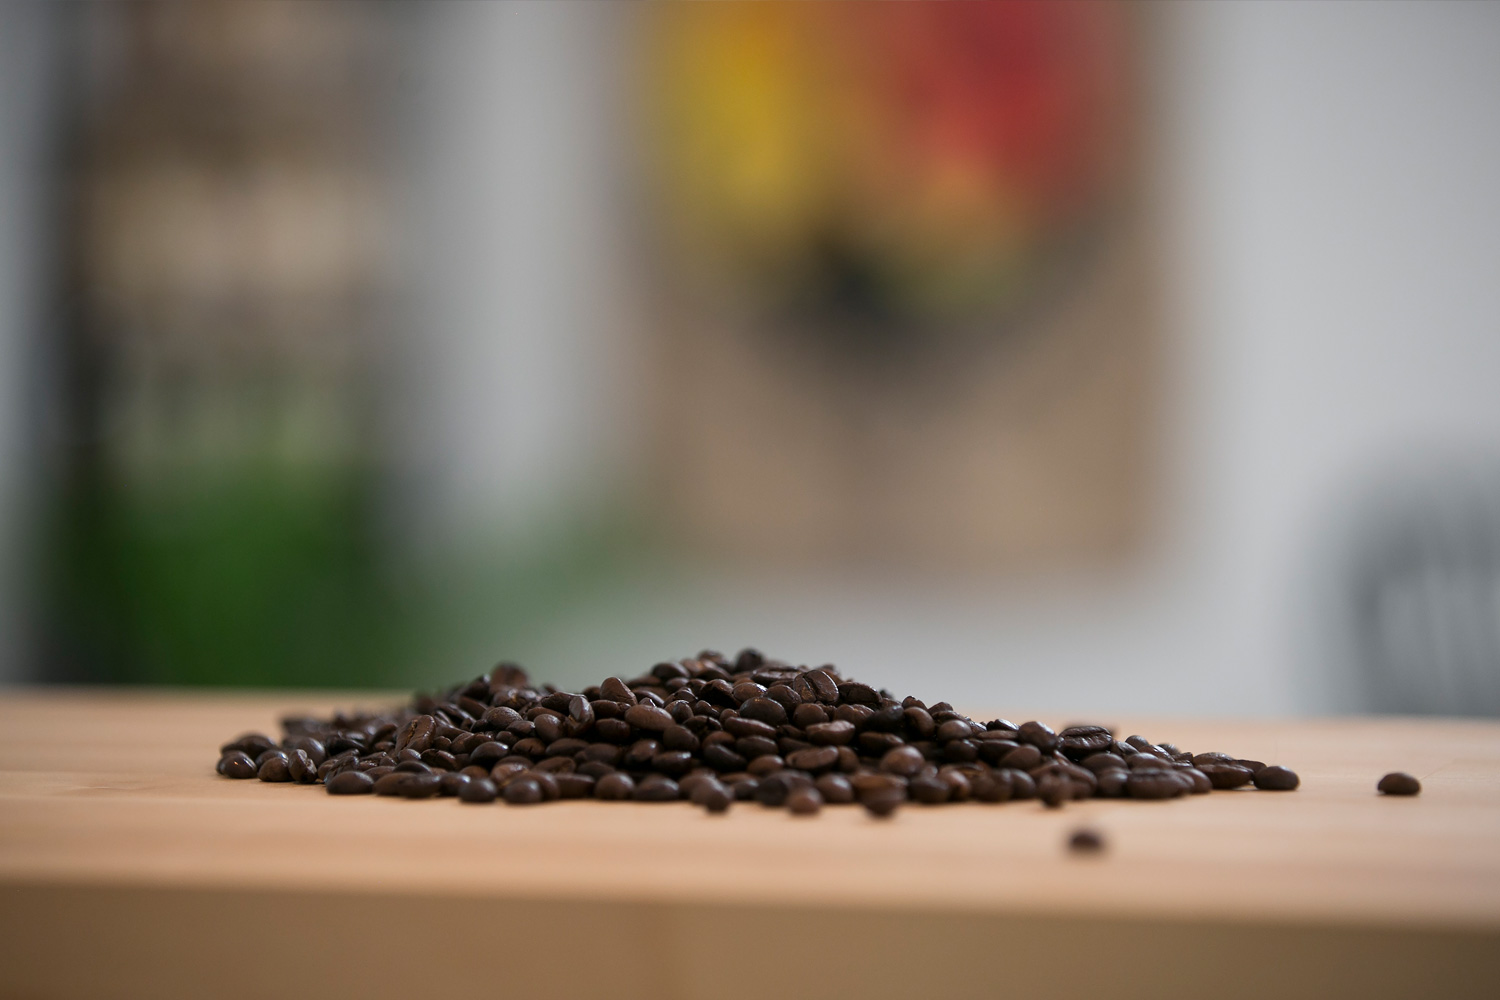 A taste for something different - Potent and addicting fair-trade Vanuatu coffee and Volcanic Earth products are at the Purple Hemp store in Summerland.